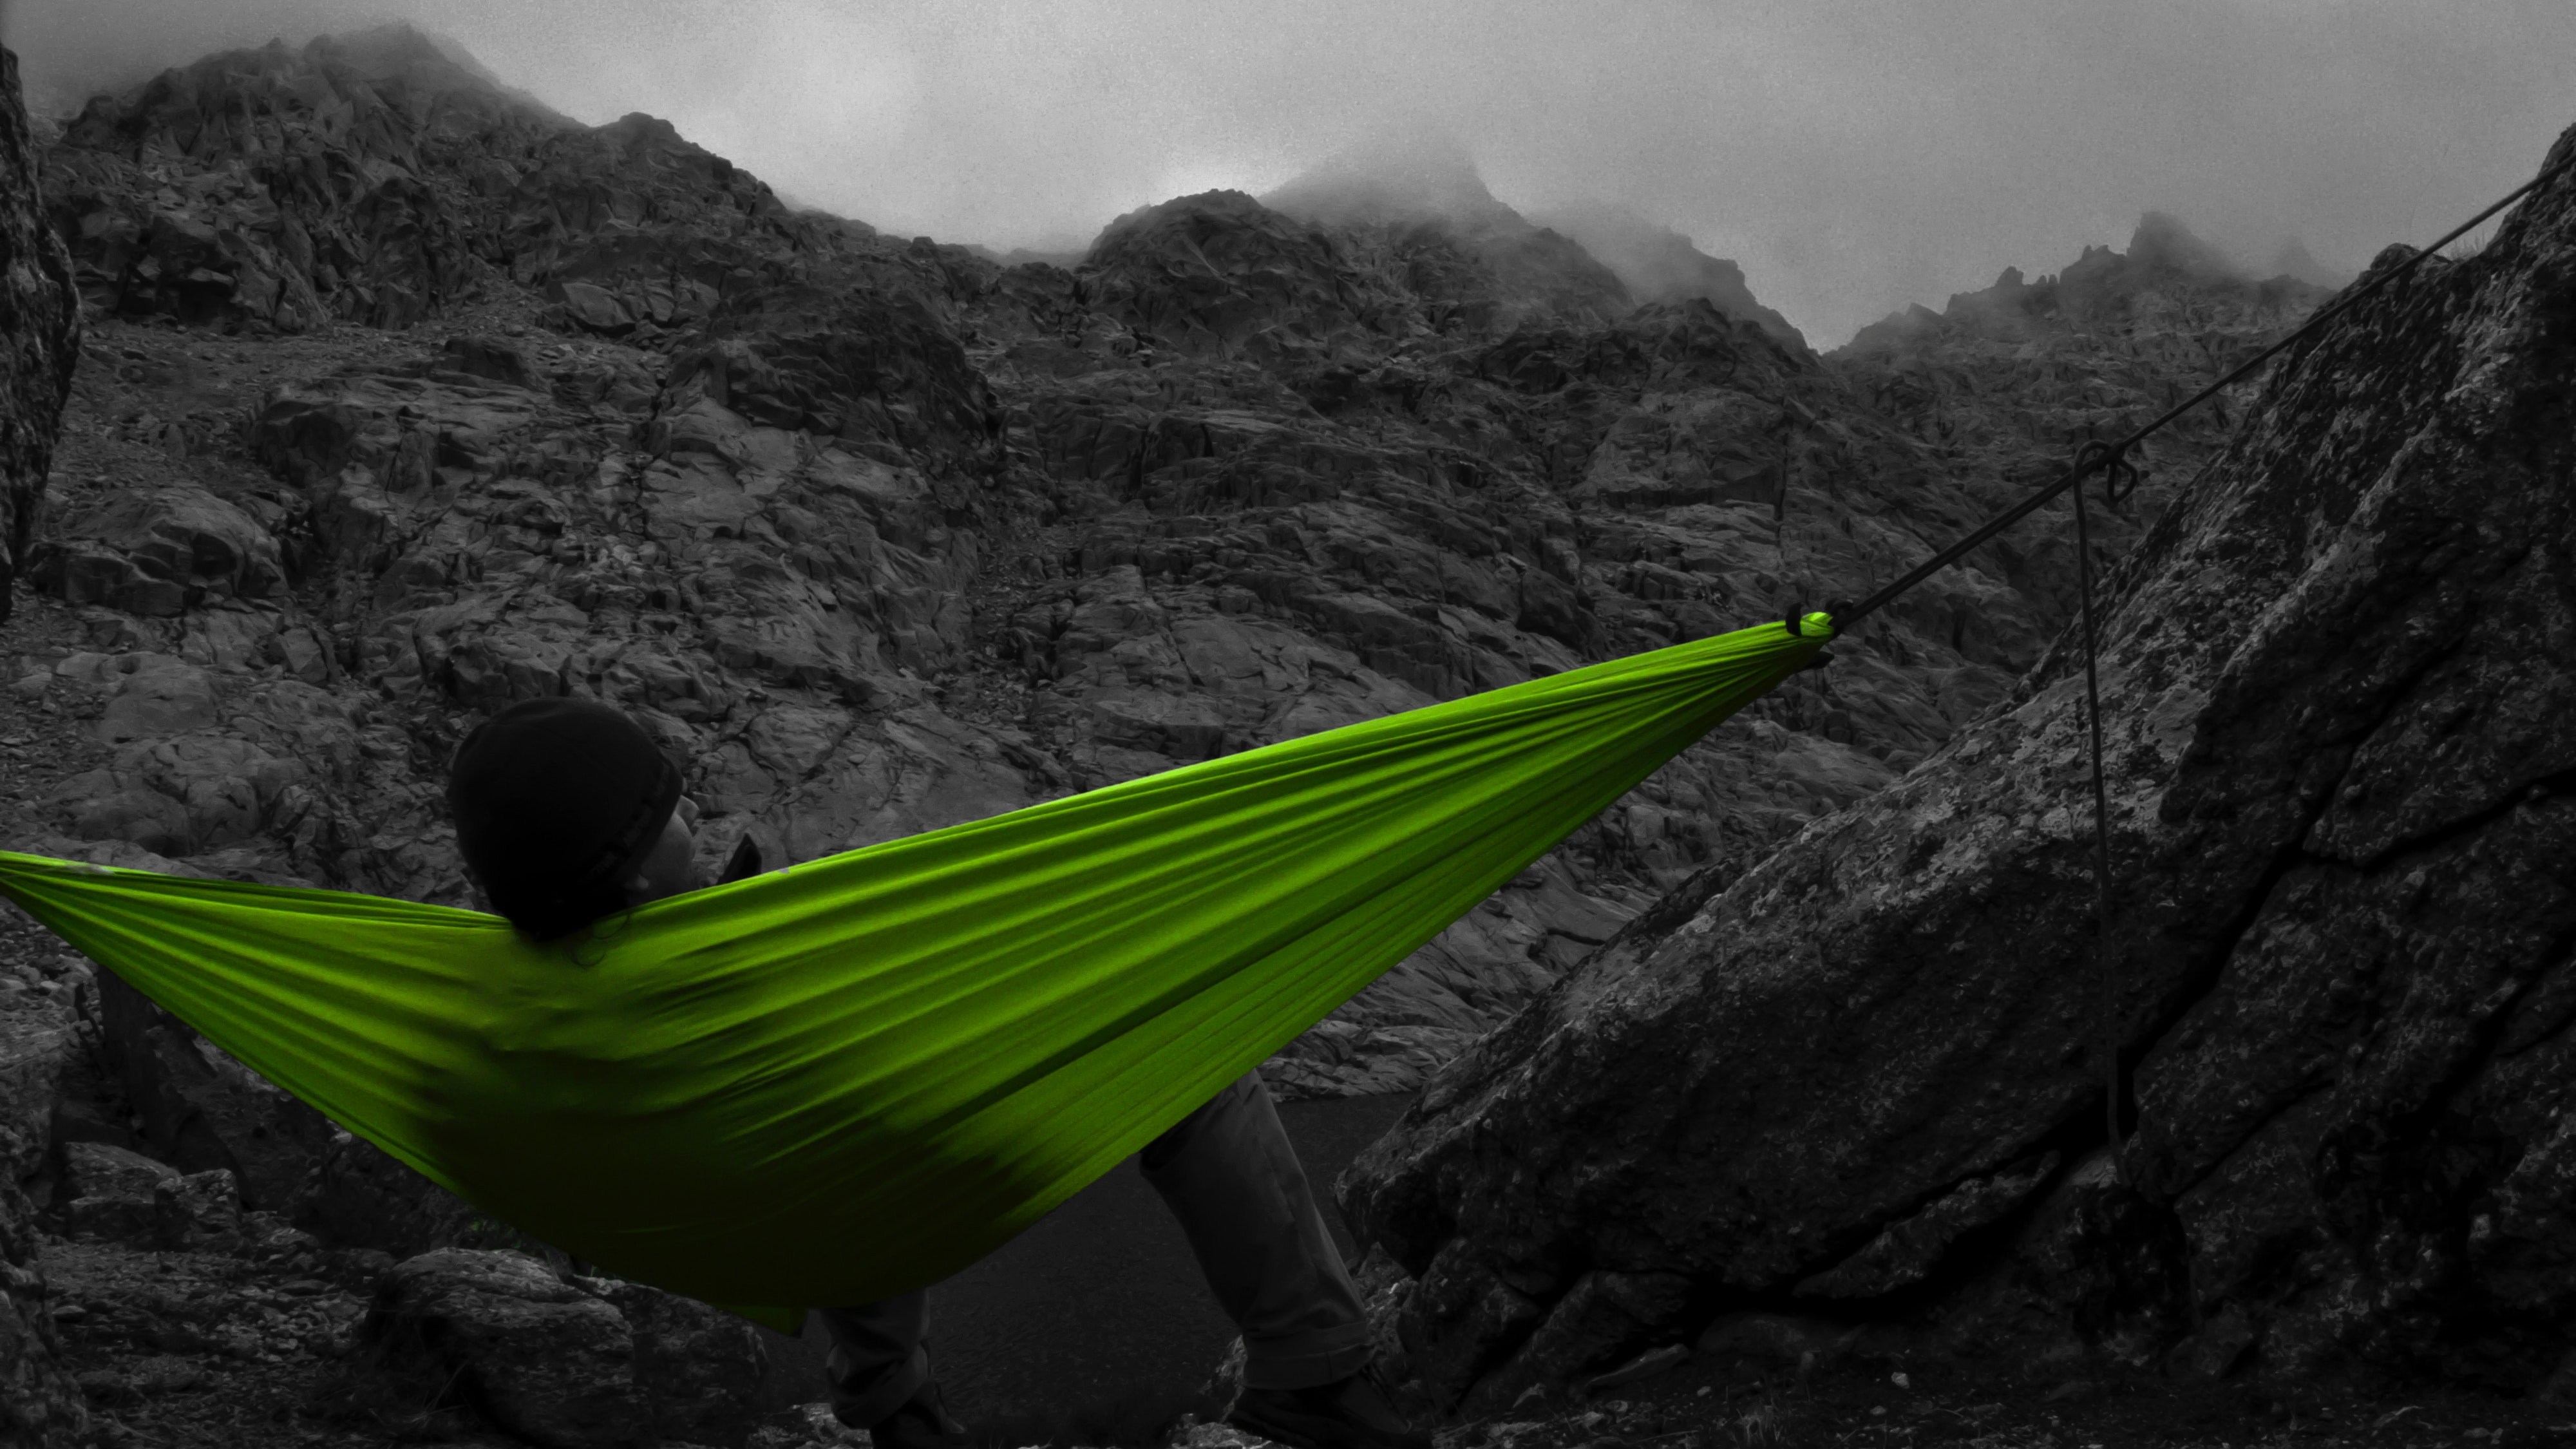 Selective color of green canvas hammock photo